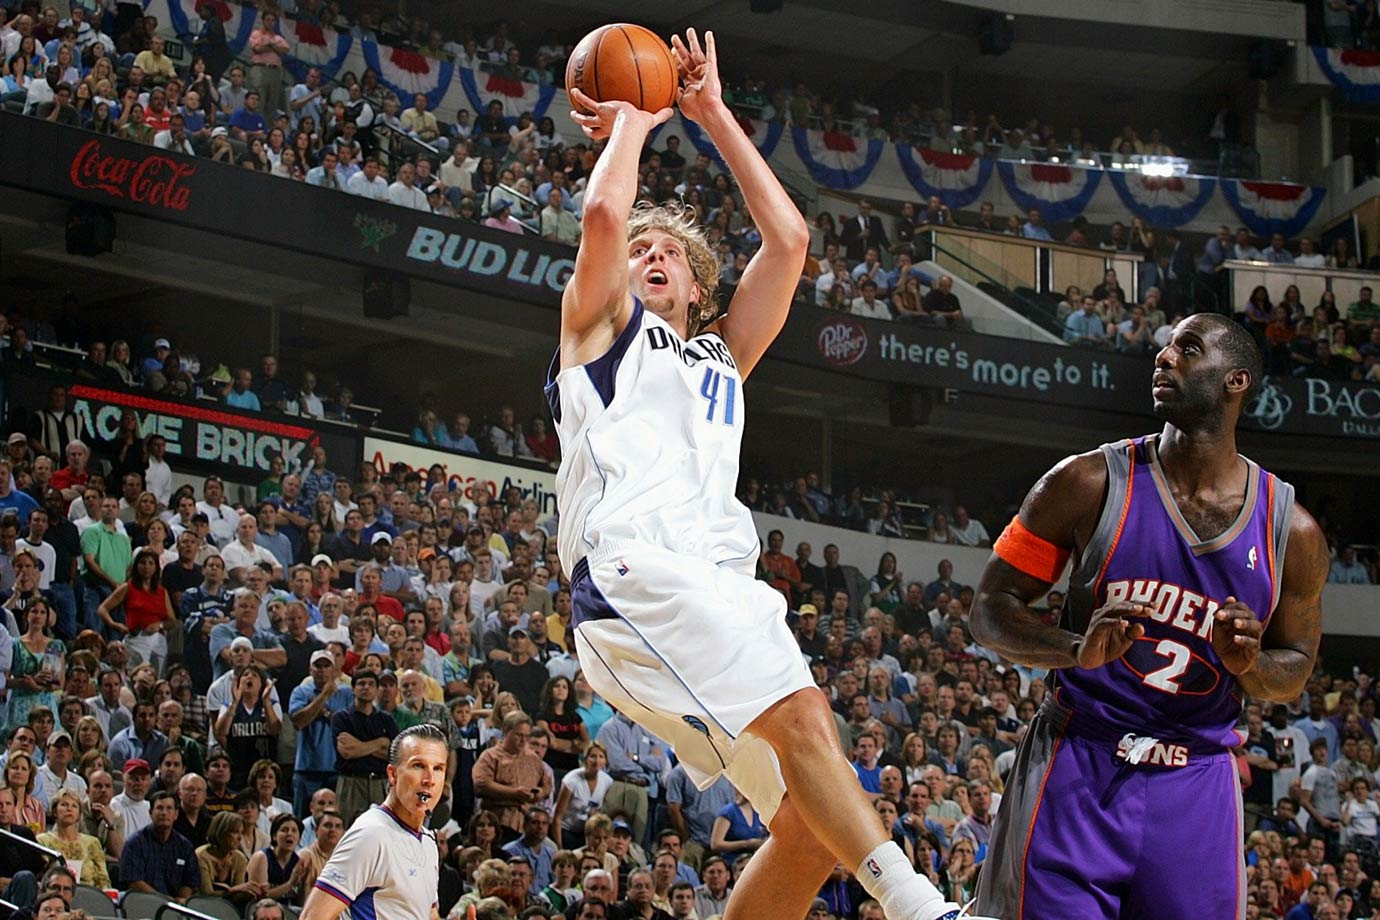 Arguably the greatest shooting big man of all-time, Nowitzki cemented his legacy after leading the Mavericks to a come-from-behind championship against the Heat in 2011. Nowitzki claimed the 2006 regular season MVP and has appeared in 13 All-Star Games. — Runners-up: Wes Unseld, Glen Rice